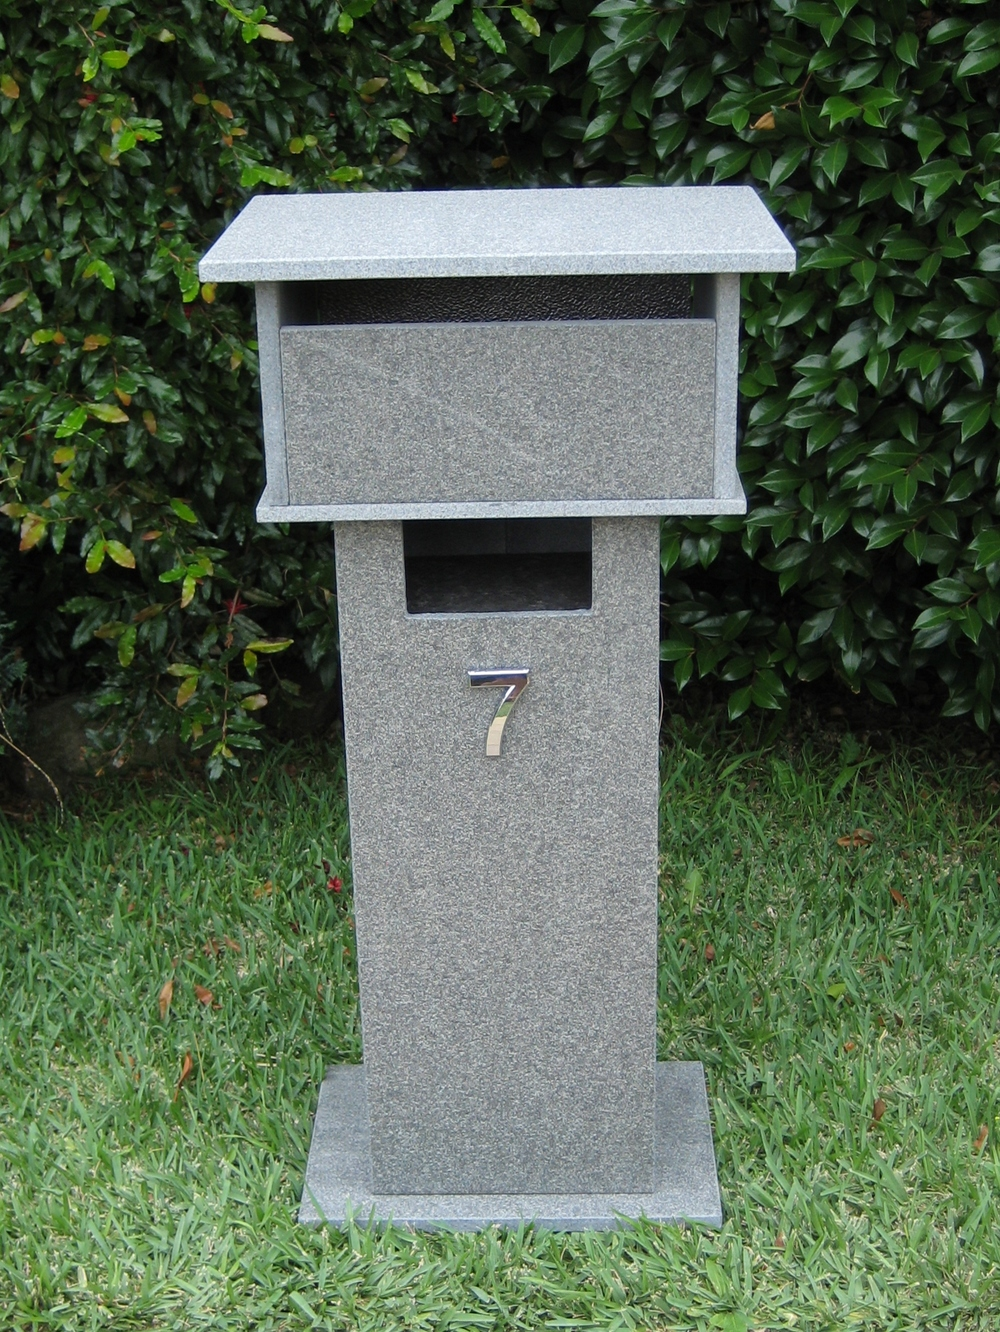 8. Blue stone letterbox with bushhammered finish. Back 2 key aluminium door. Tough material. Sizes 820x400x300 $396